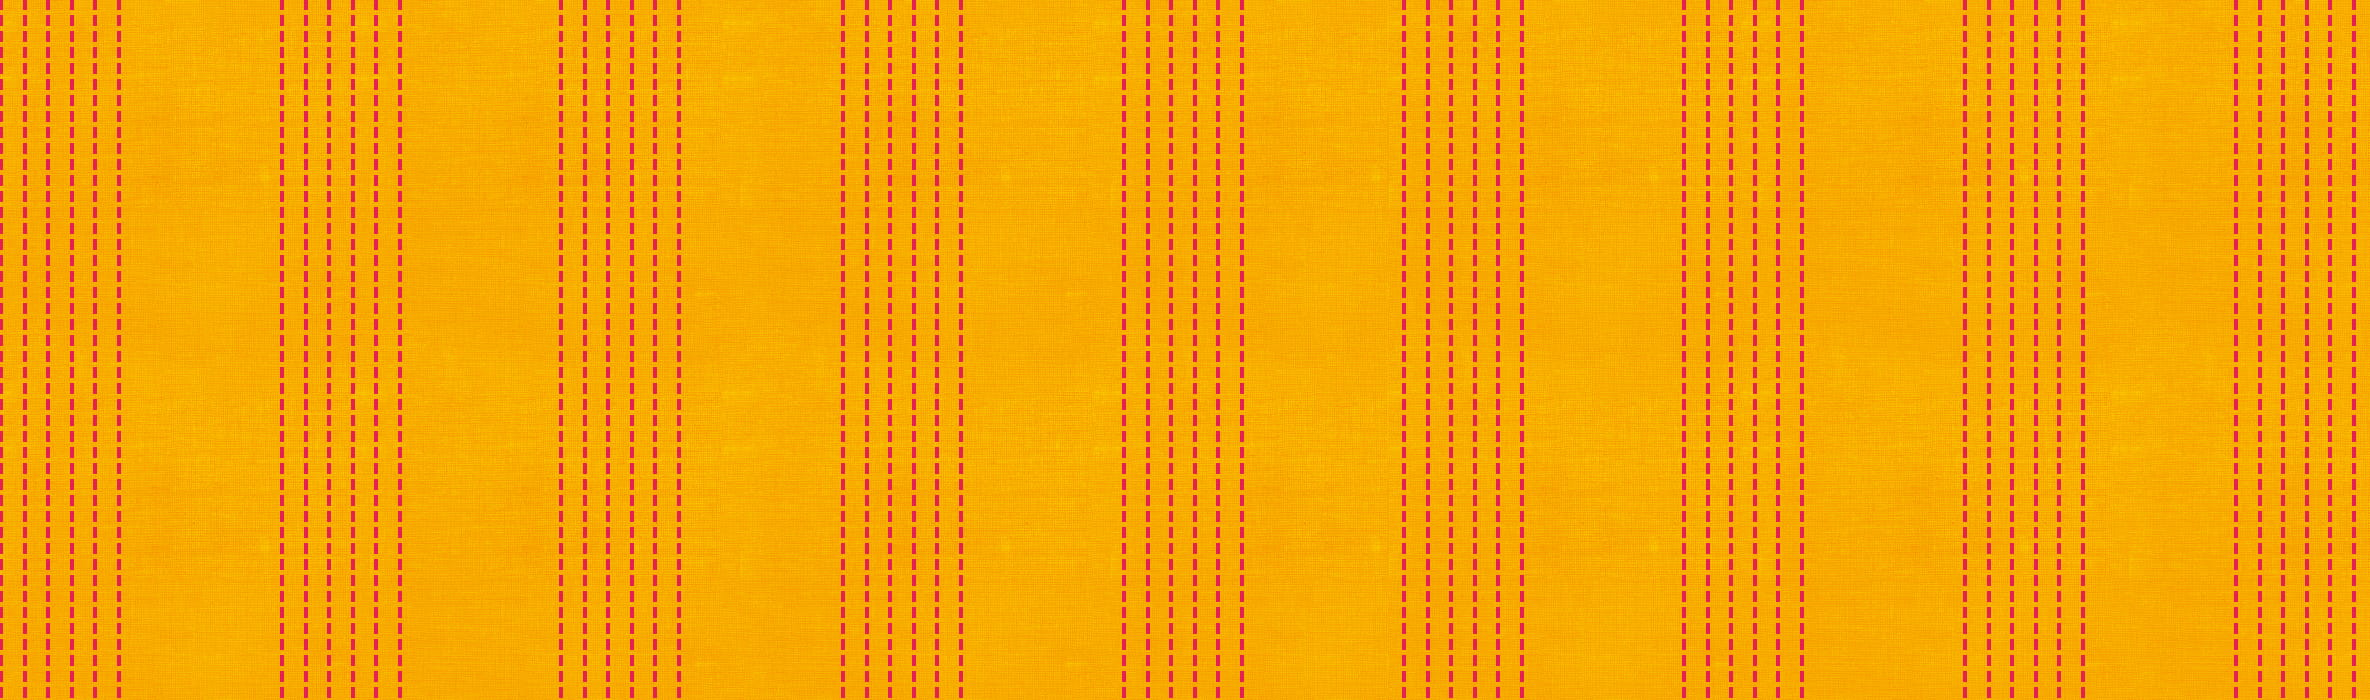 orange and red pattern background